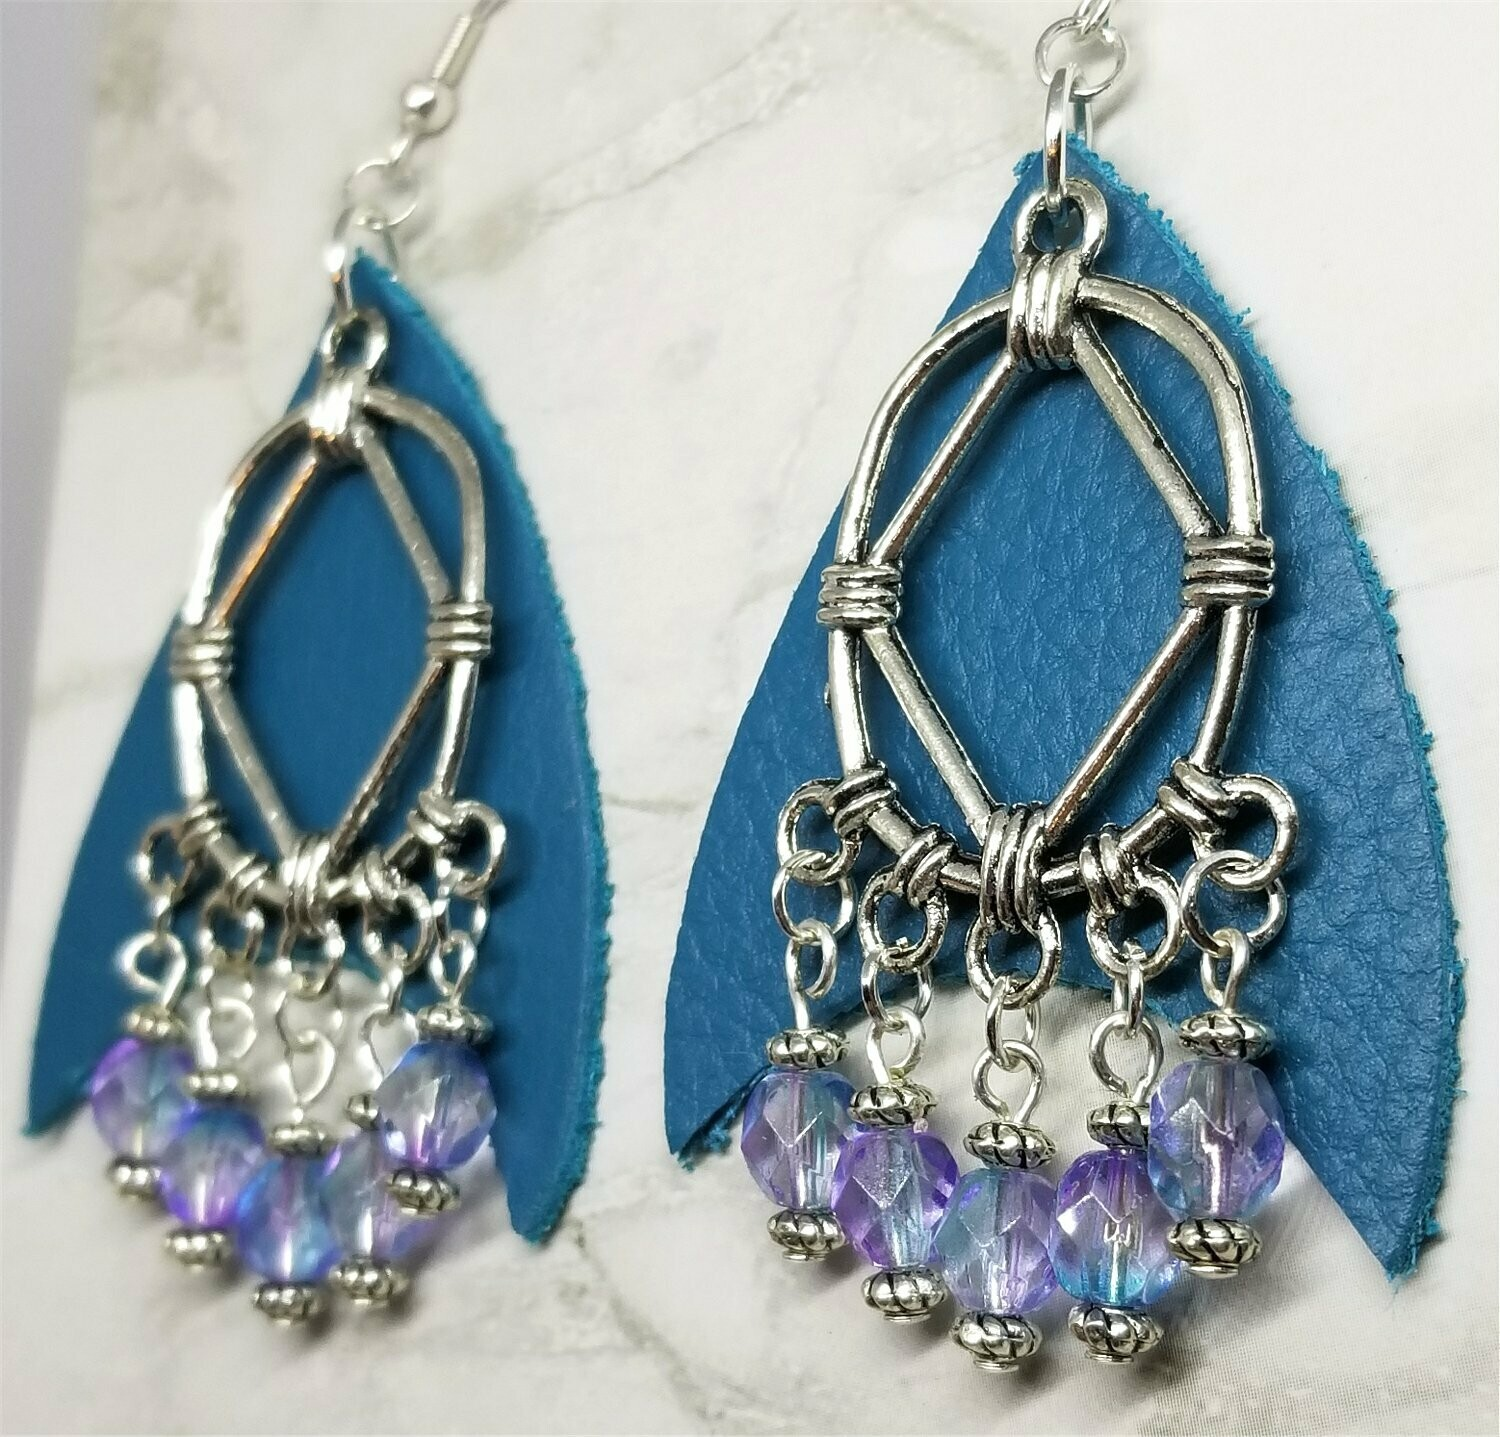 Teal Real Leather Earrings with Silver Chandelier and Czech Glass Bead Dangles